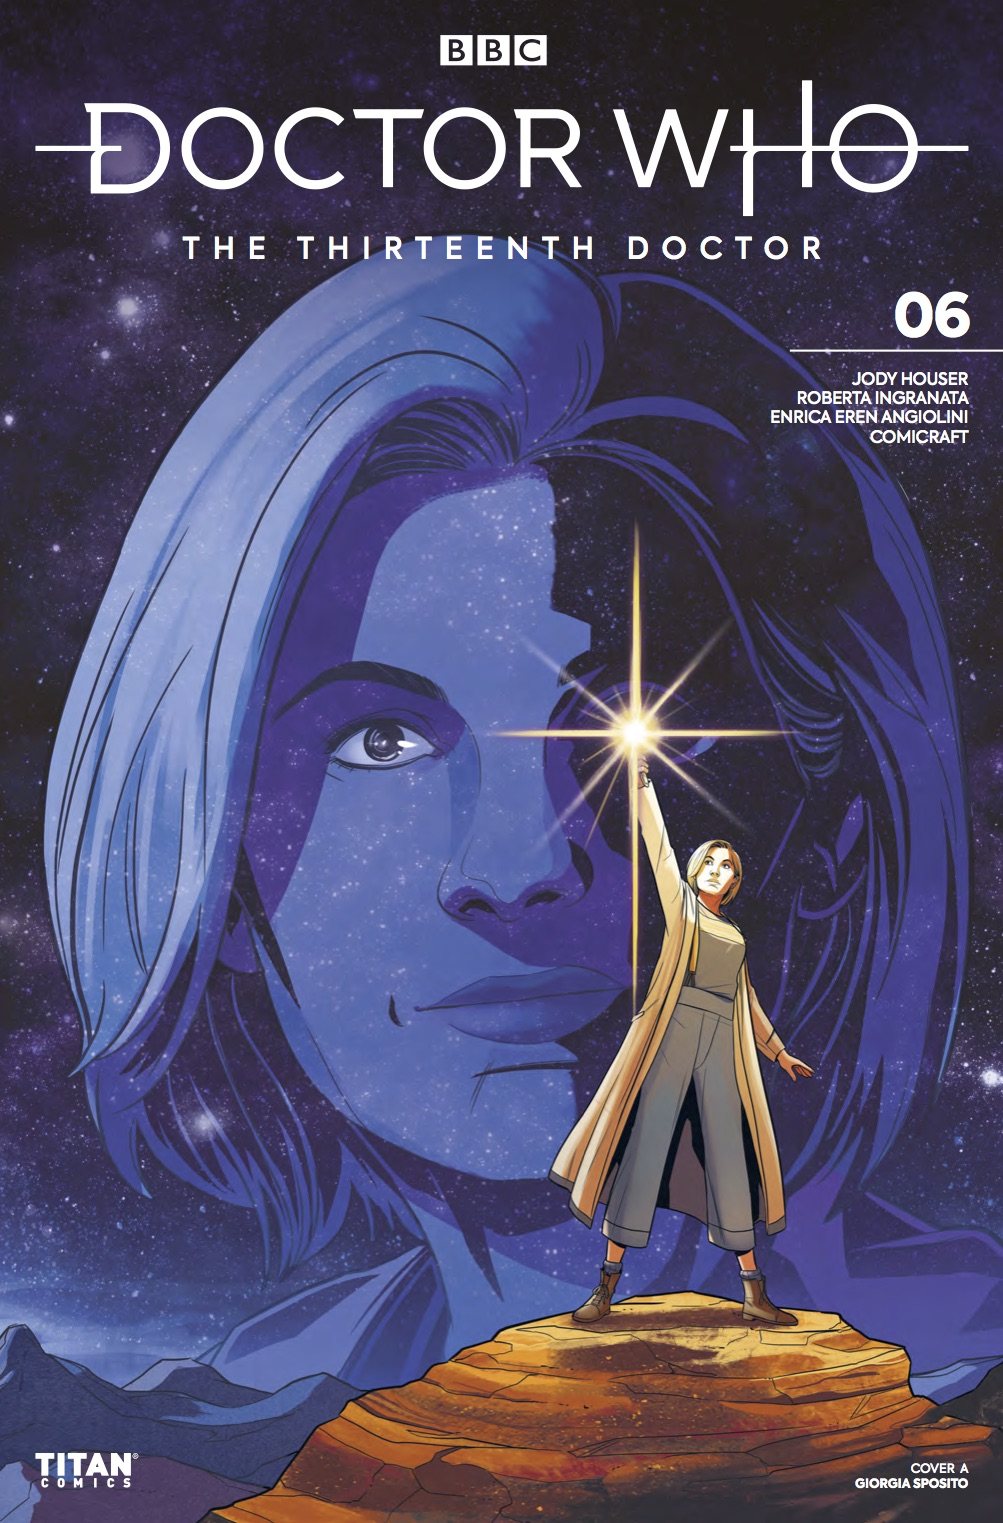 Titan Comics – Doctor Who: The Thirteenth Doctor #6 – Cover A: Giorgia Sposito